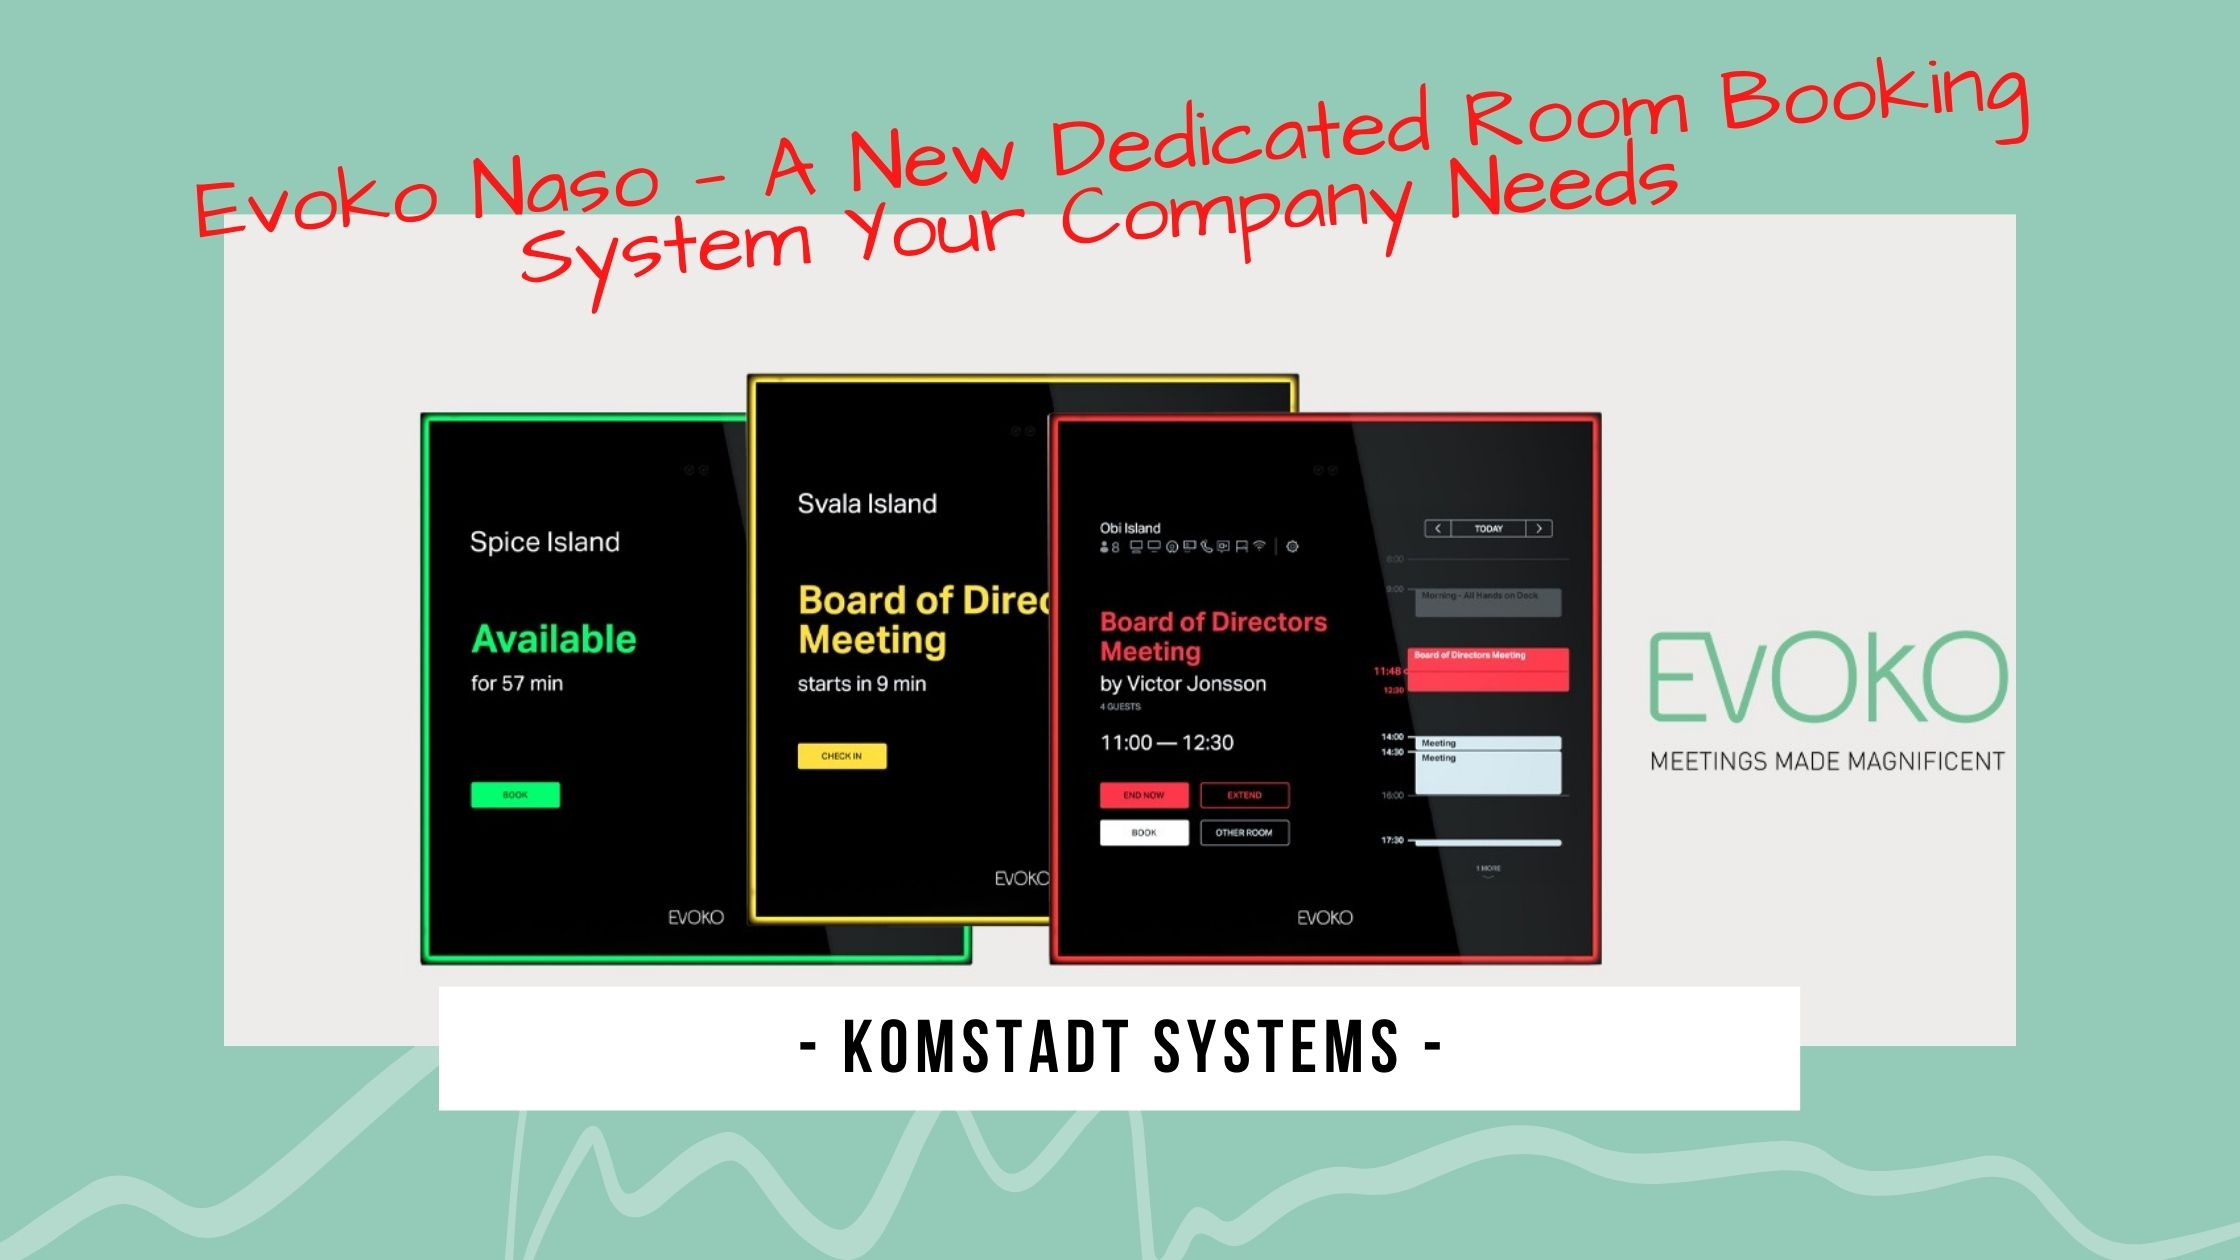 Evoko Naso — A New Dedicated Room Booking System Your Company Needs